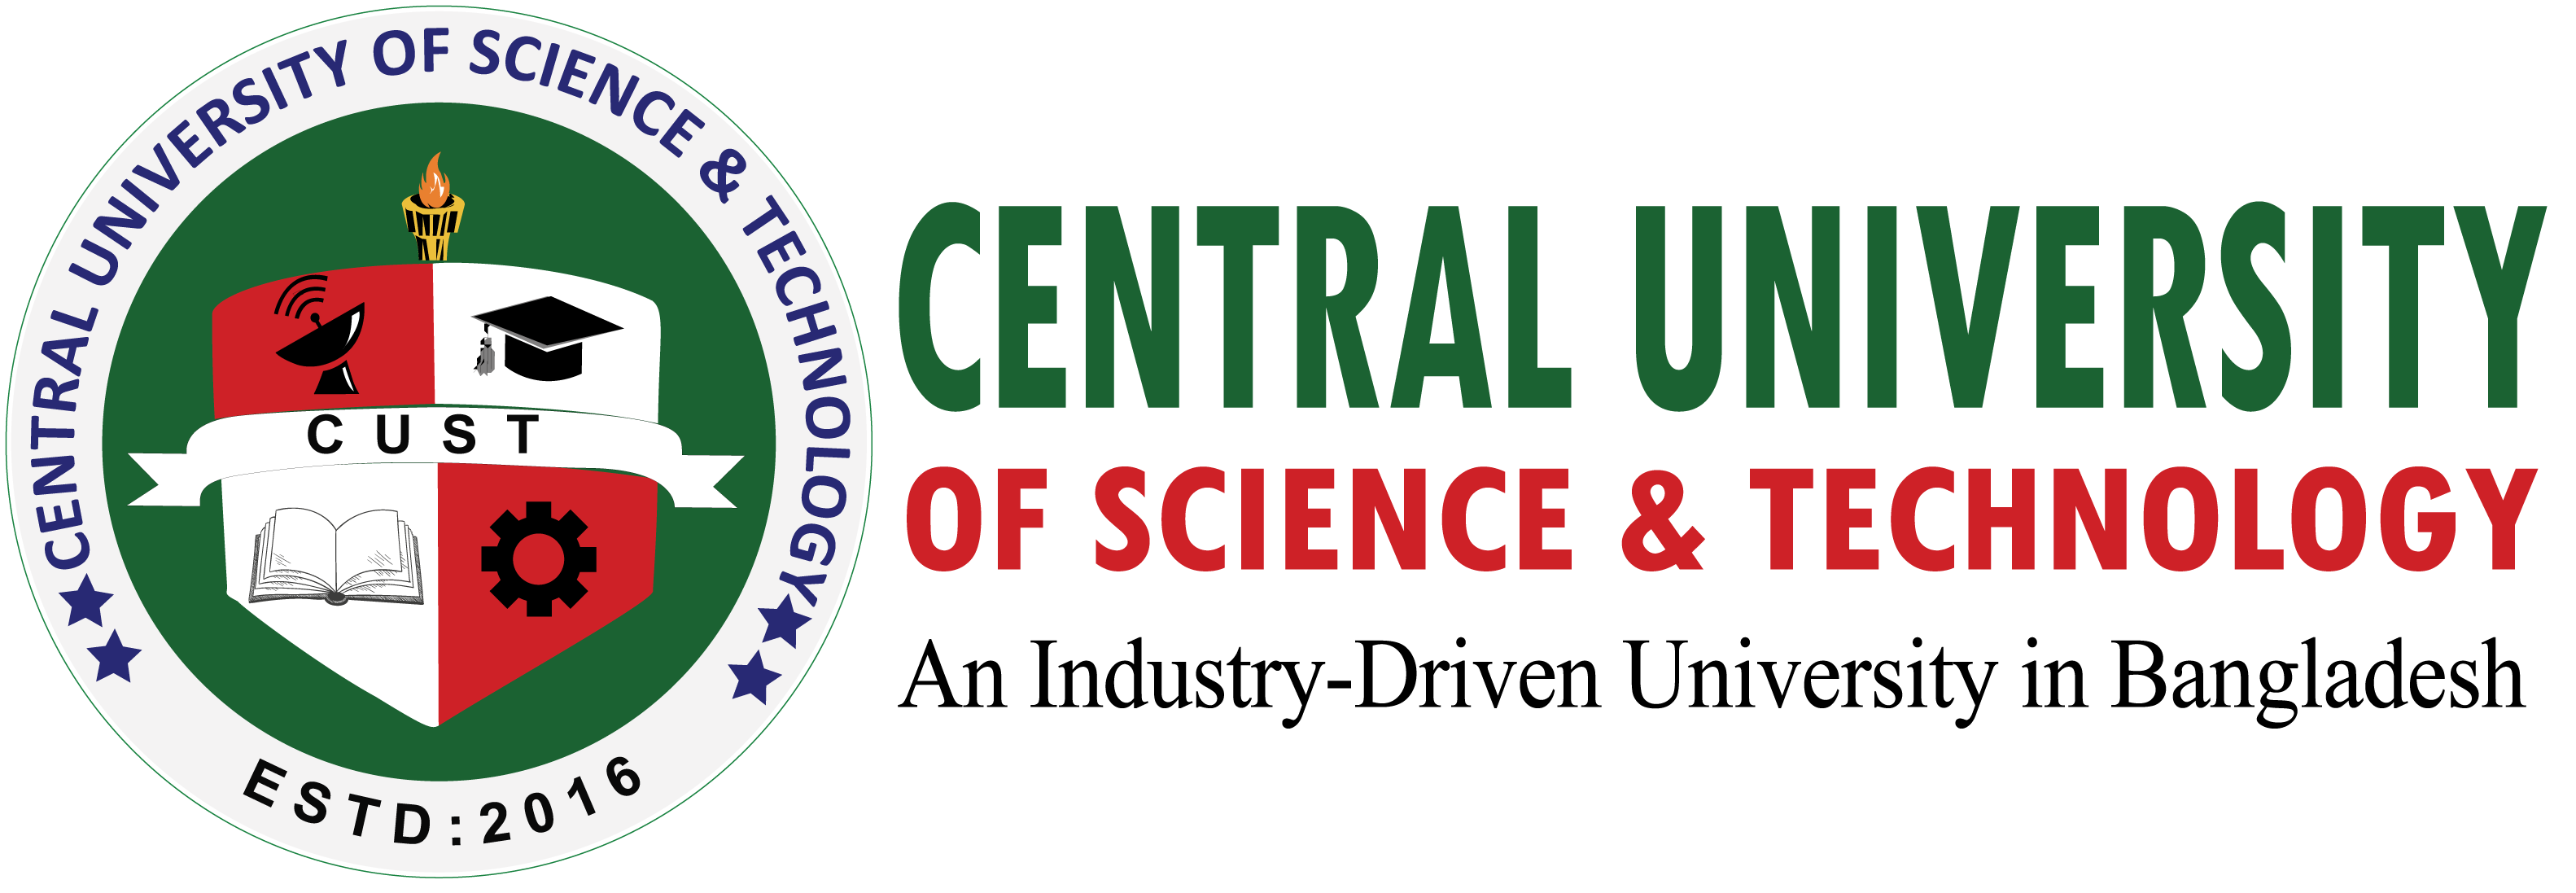 Class Schedule - Central University of Science & Technology